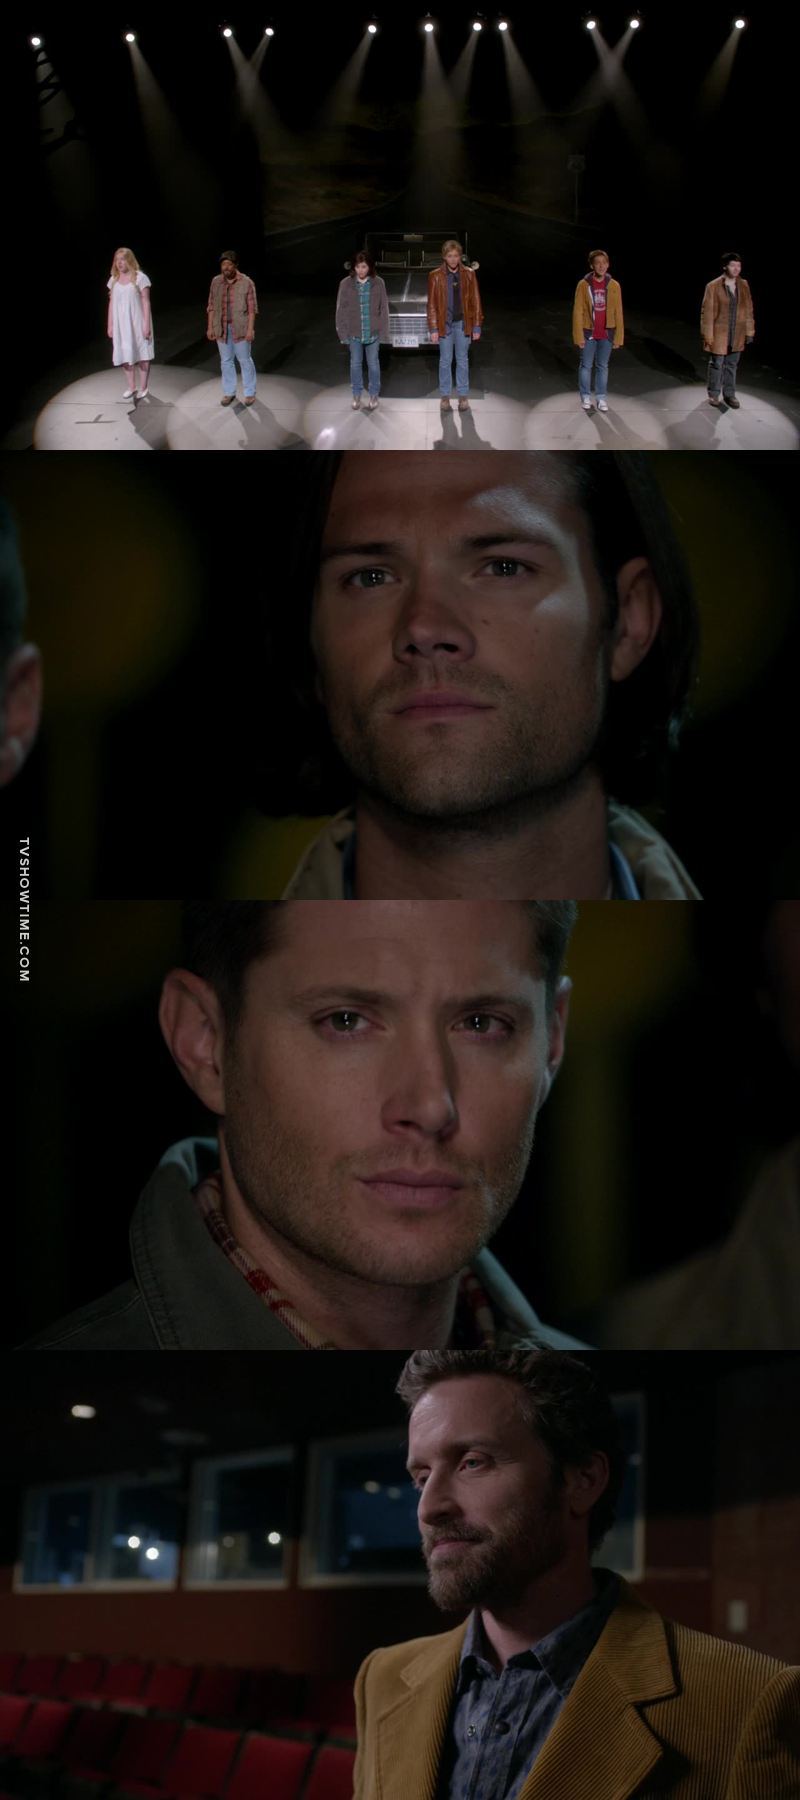 I LOVED EVERY SINGLE MINUTE OF THIS EPISODE 🙌🏻 Destiel, Carry On My Wayward Son and CHUCK IS BACK  This episode made me realise how much I love Supernatural and how much Sam and Dean Winchester mean to me, they deserved better 💞